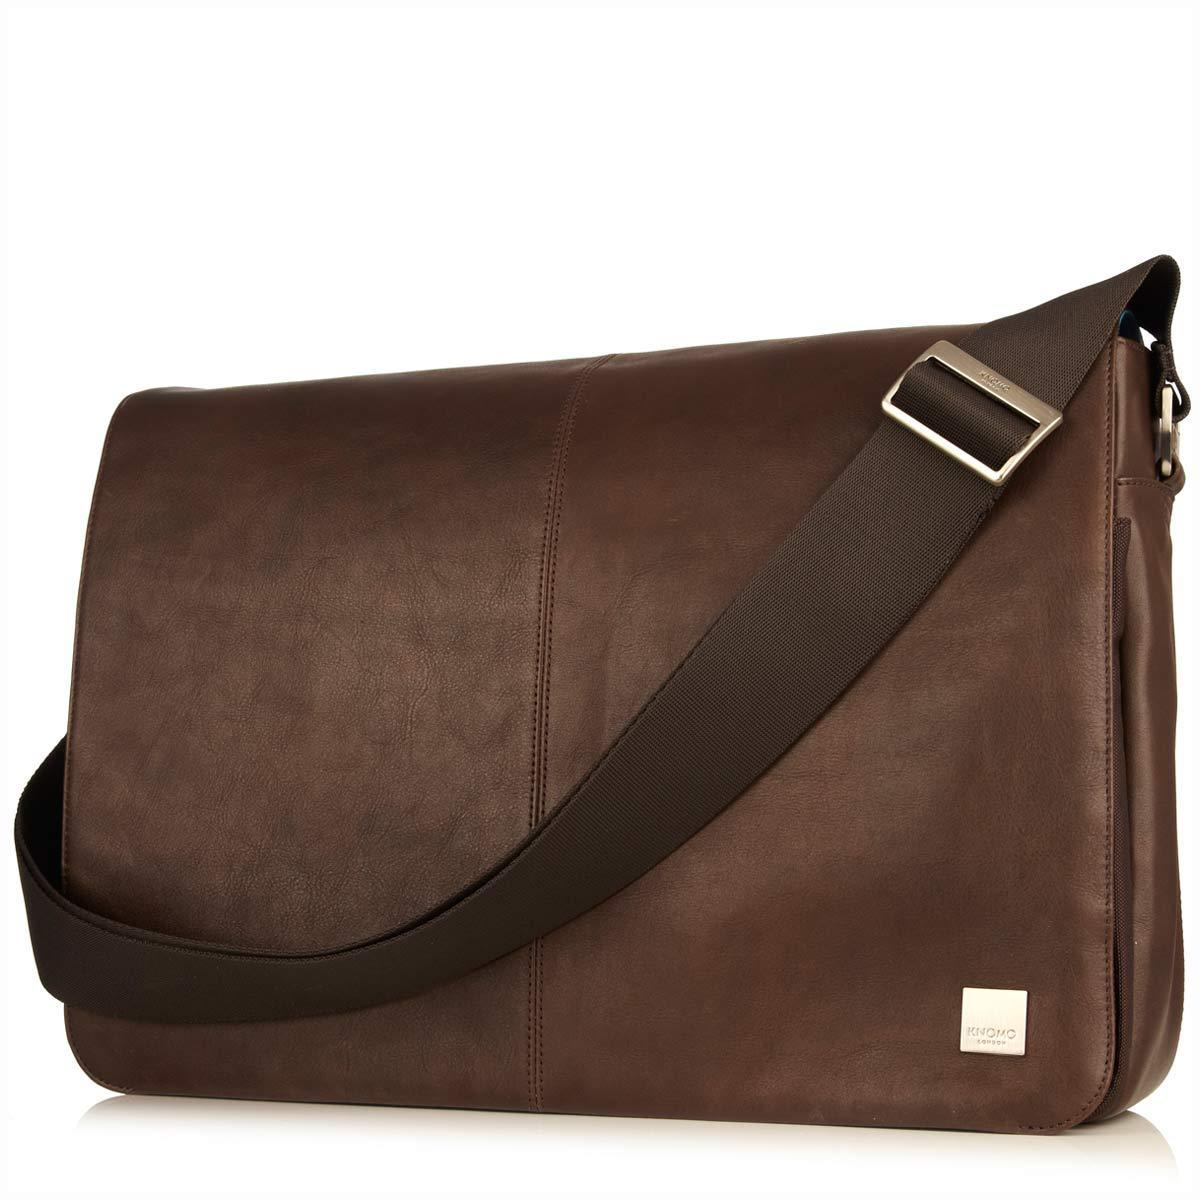 "KNOMO Bungo Laptop Messenger Bag Three Quarter View With Strap 15.6"" -  Brown 